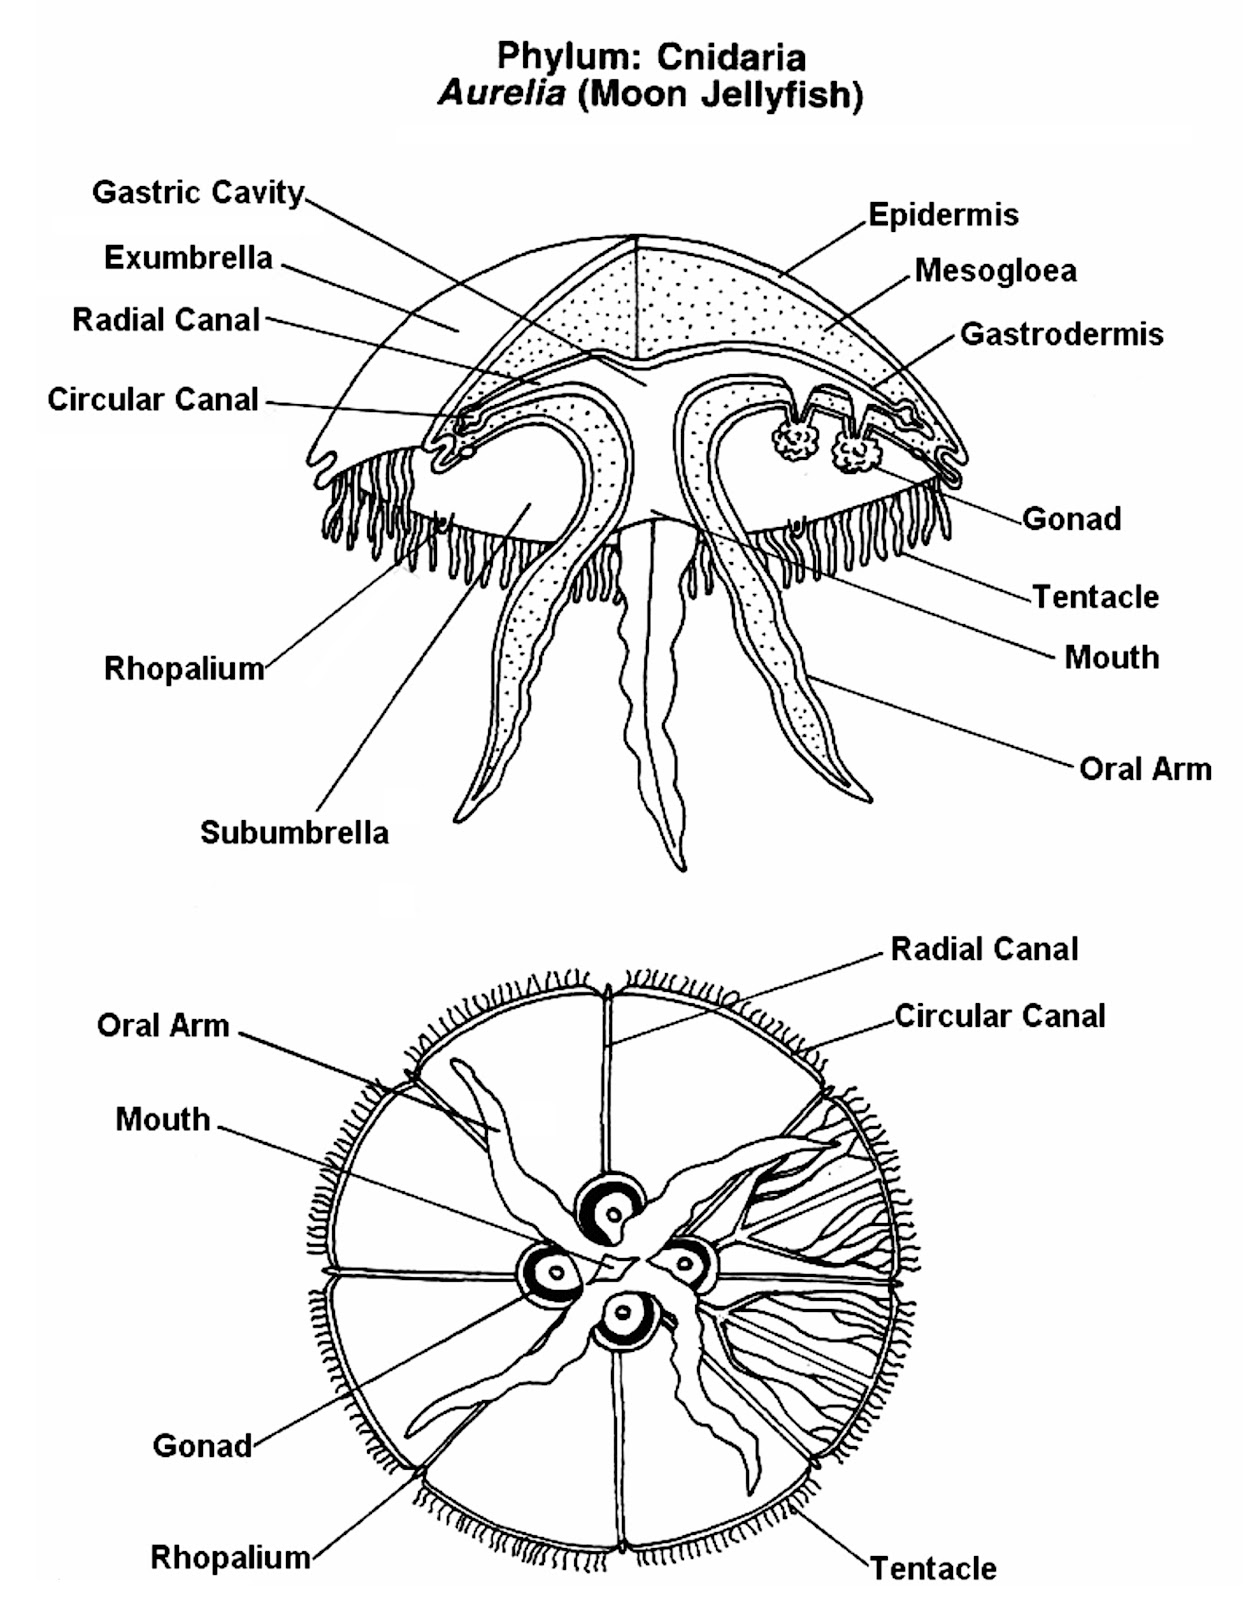 Squid Internal Anatomy Diagram Turn Signal Flasher Problem Labeled Of A Nice Place To Get